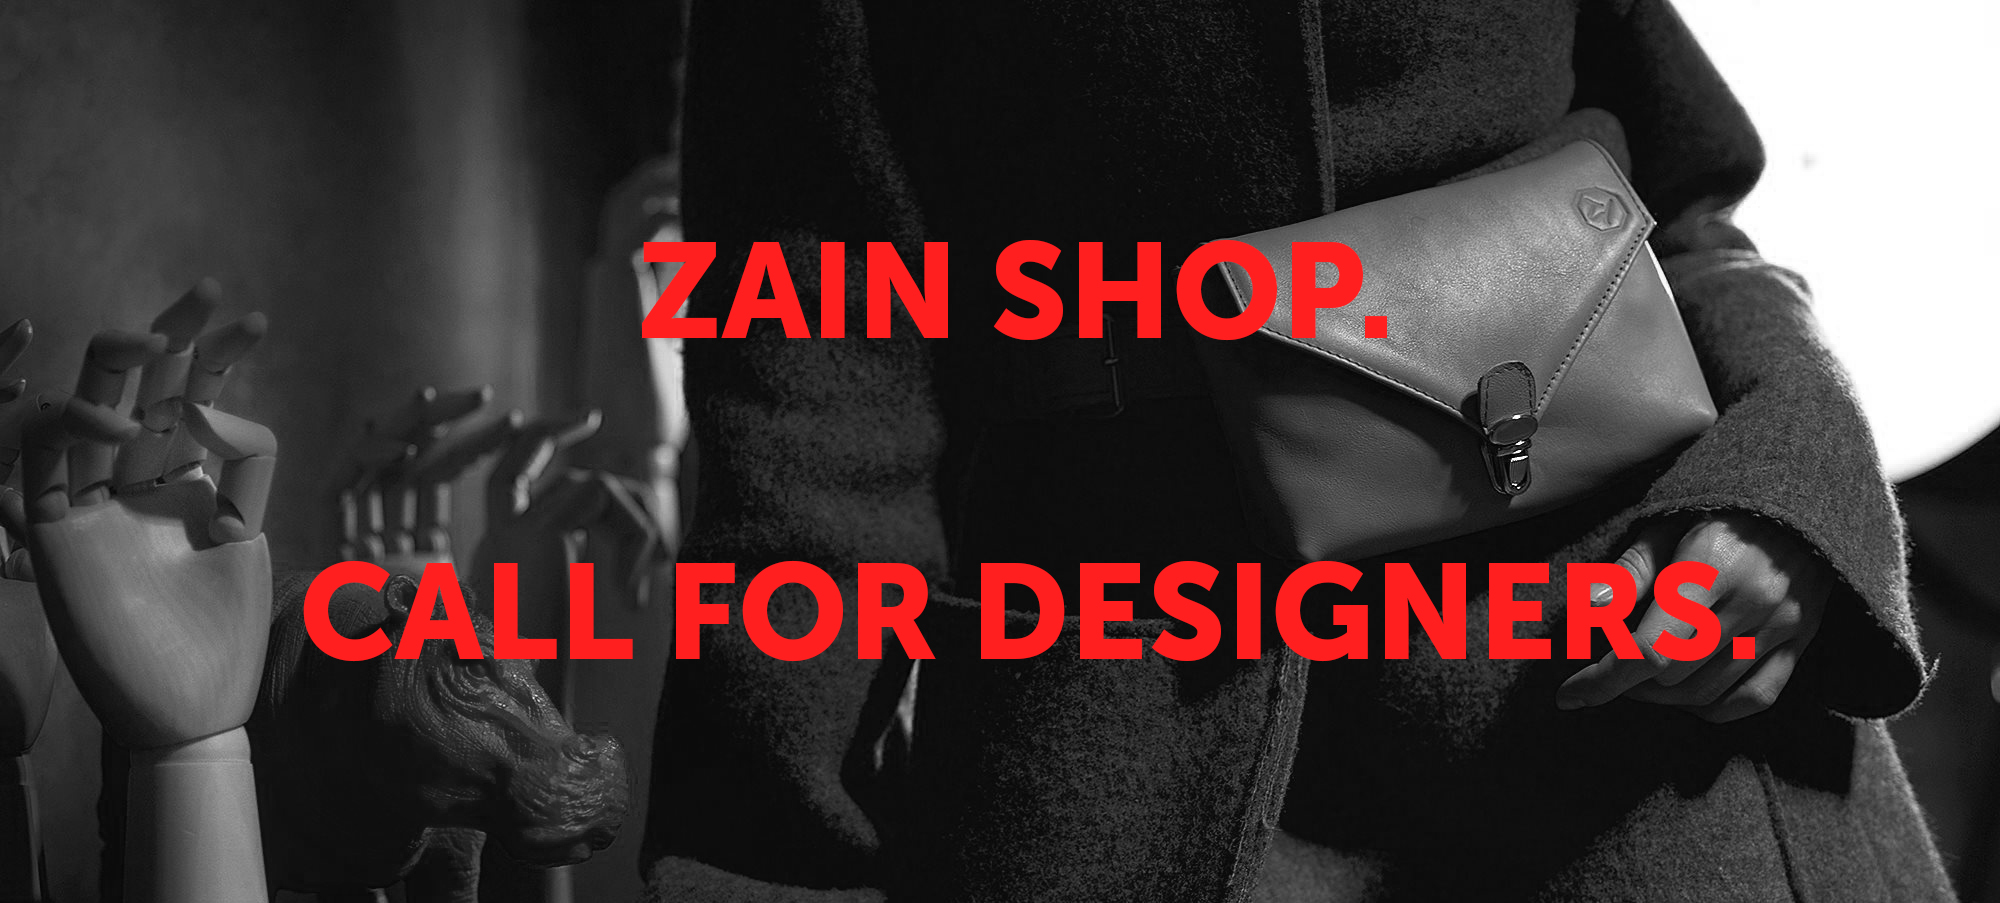 ZAIN SHOP COVER.jpg